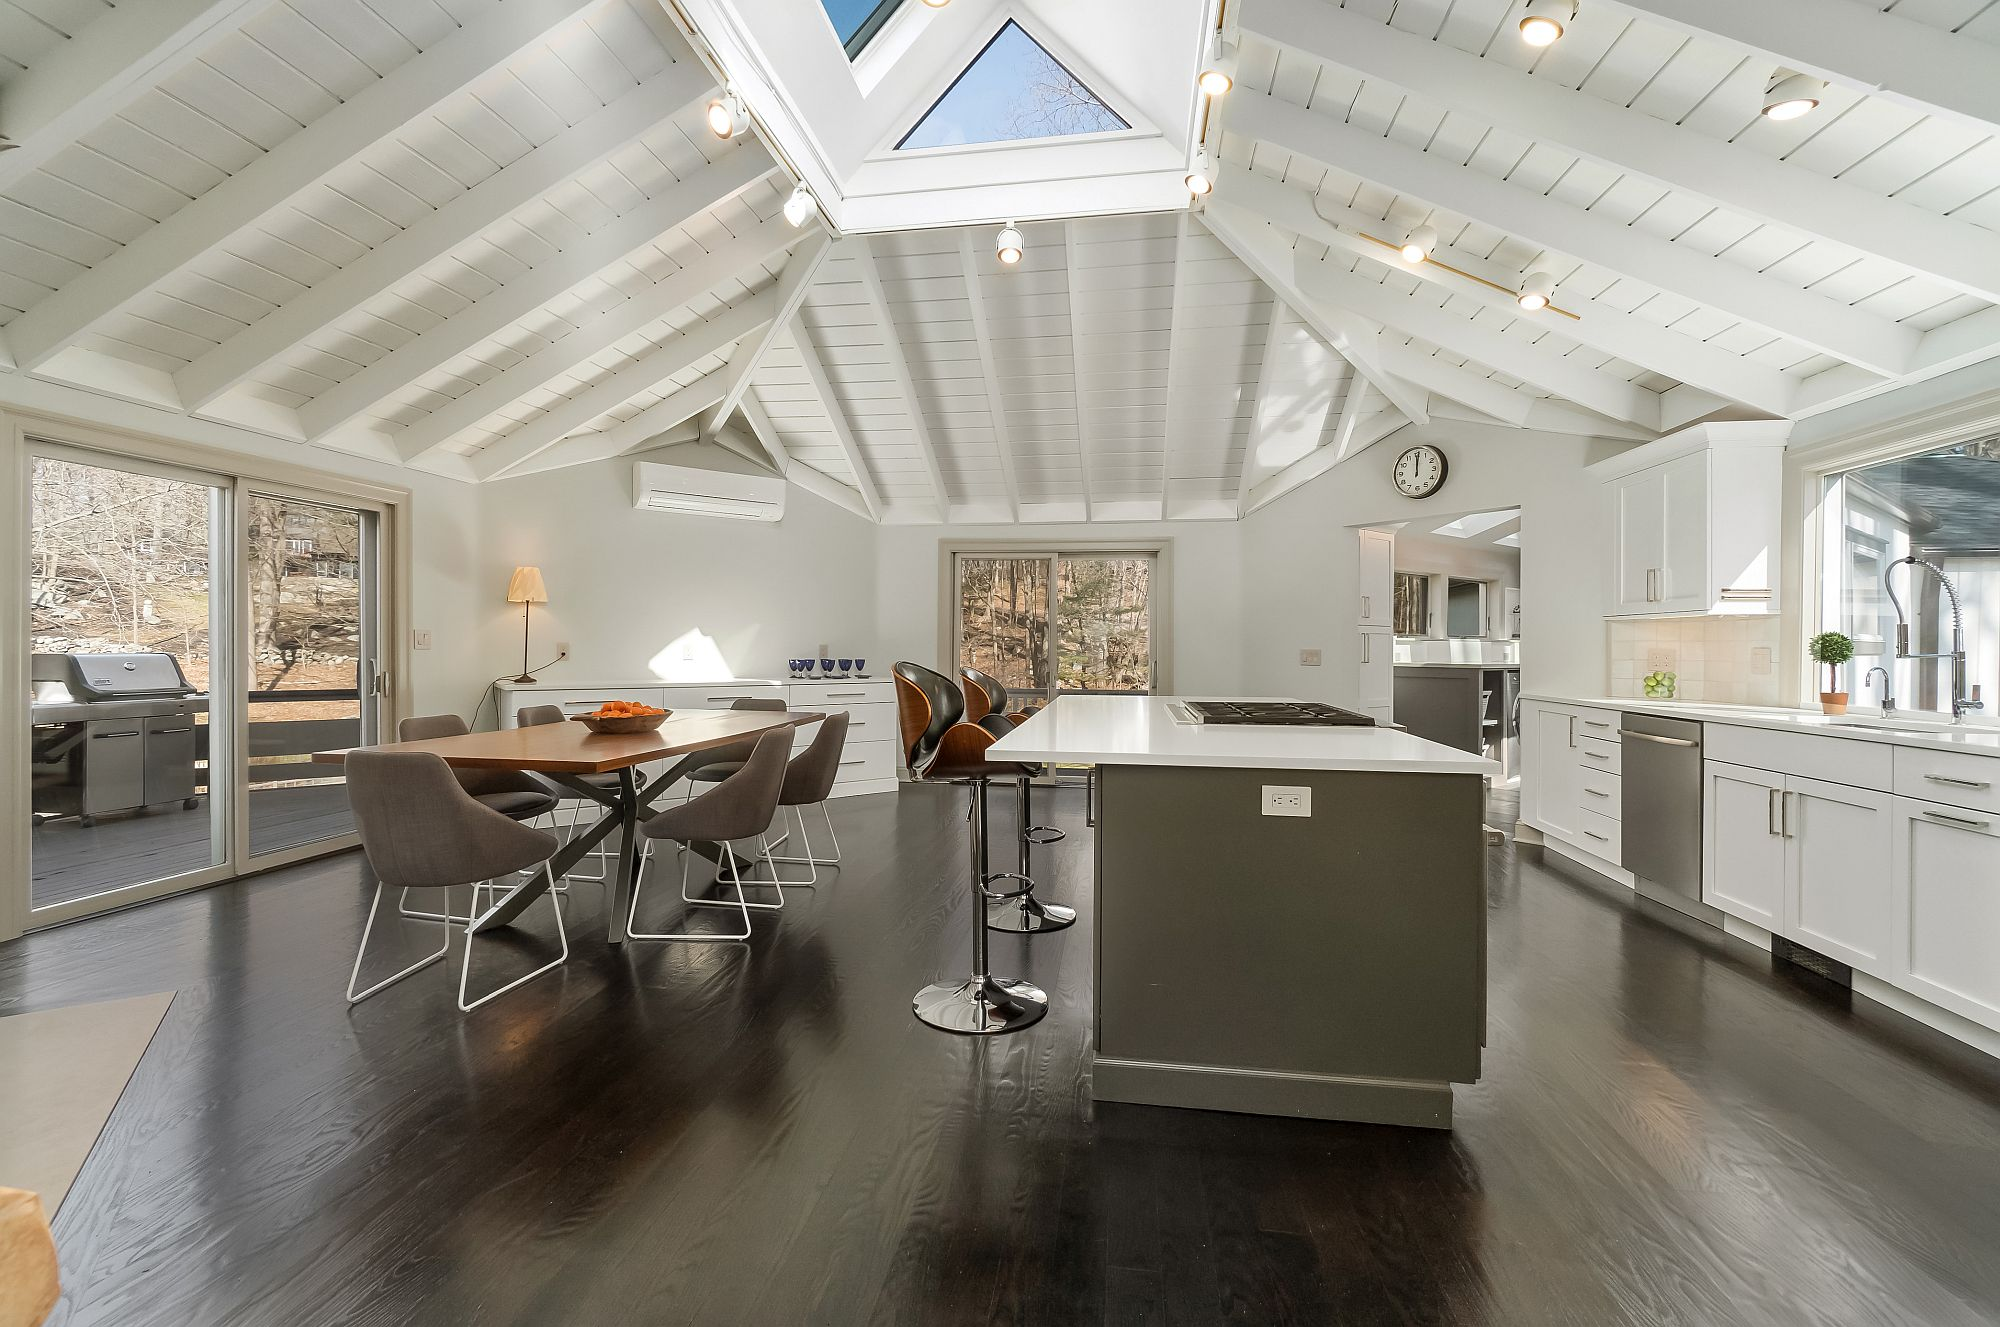 Light-filled-and-exquisite-kitchen-takes-teh-center-stage-here